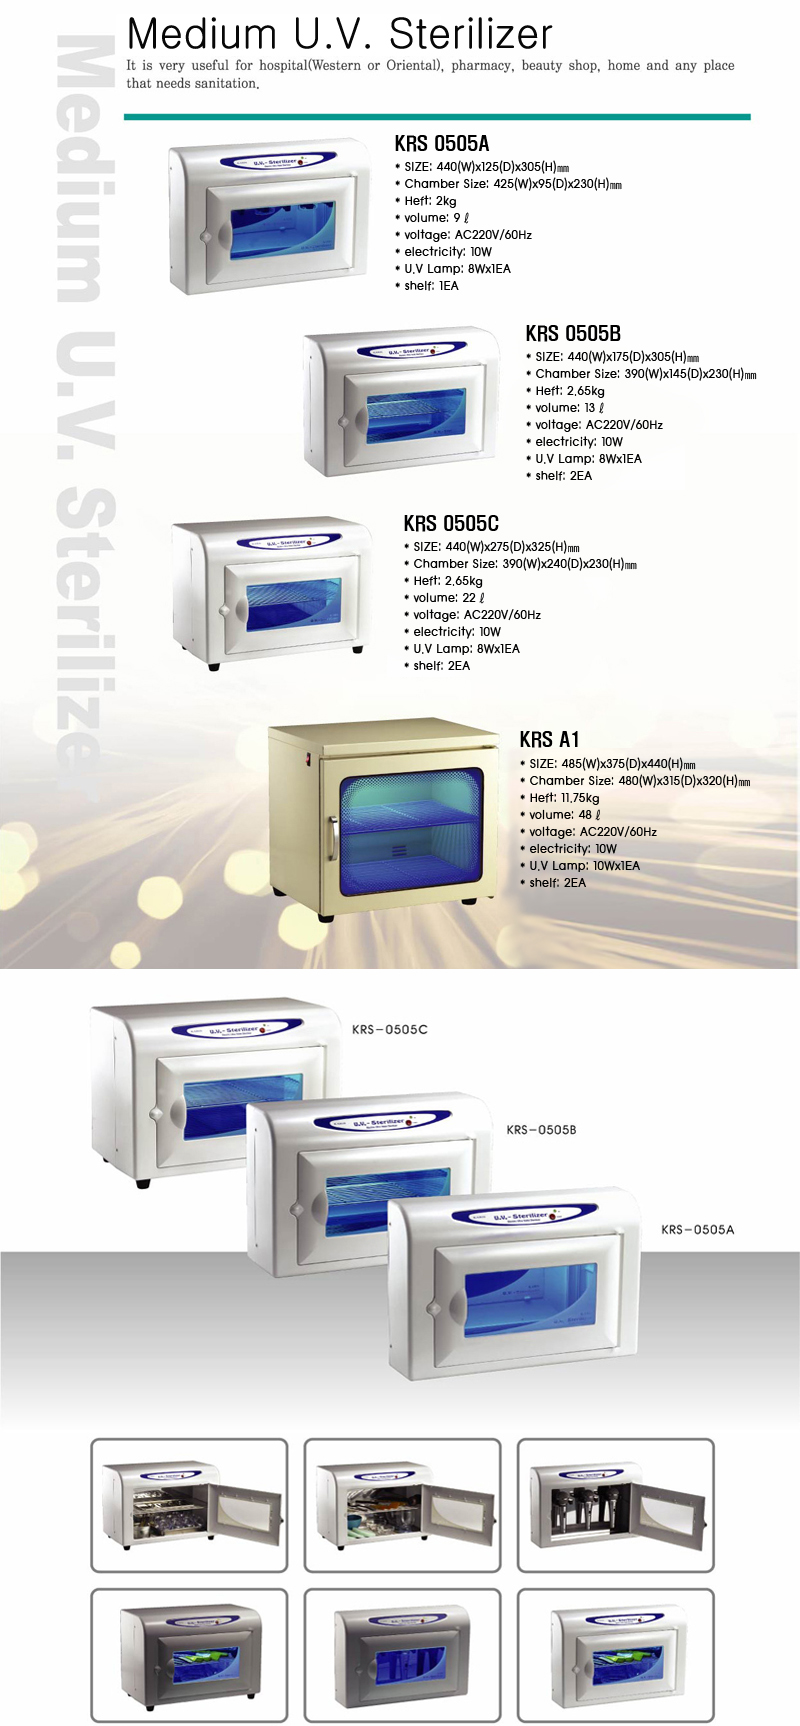 KARIS Medium U.V Sterilizer KRS-0505 A 1